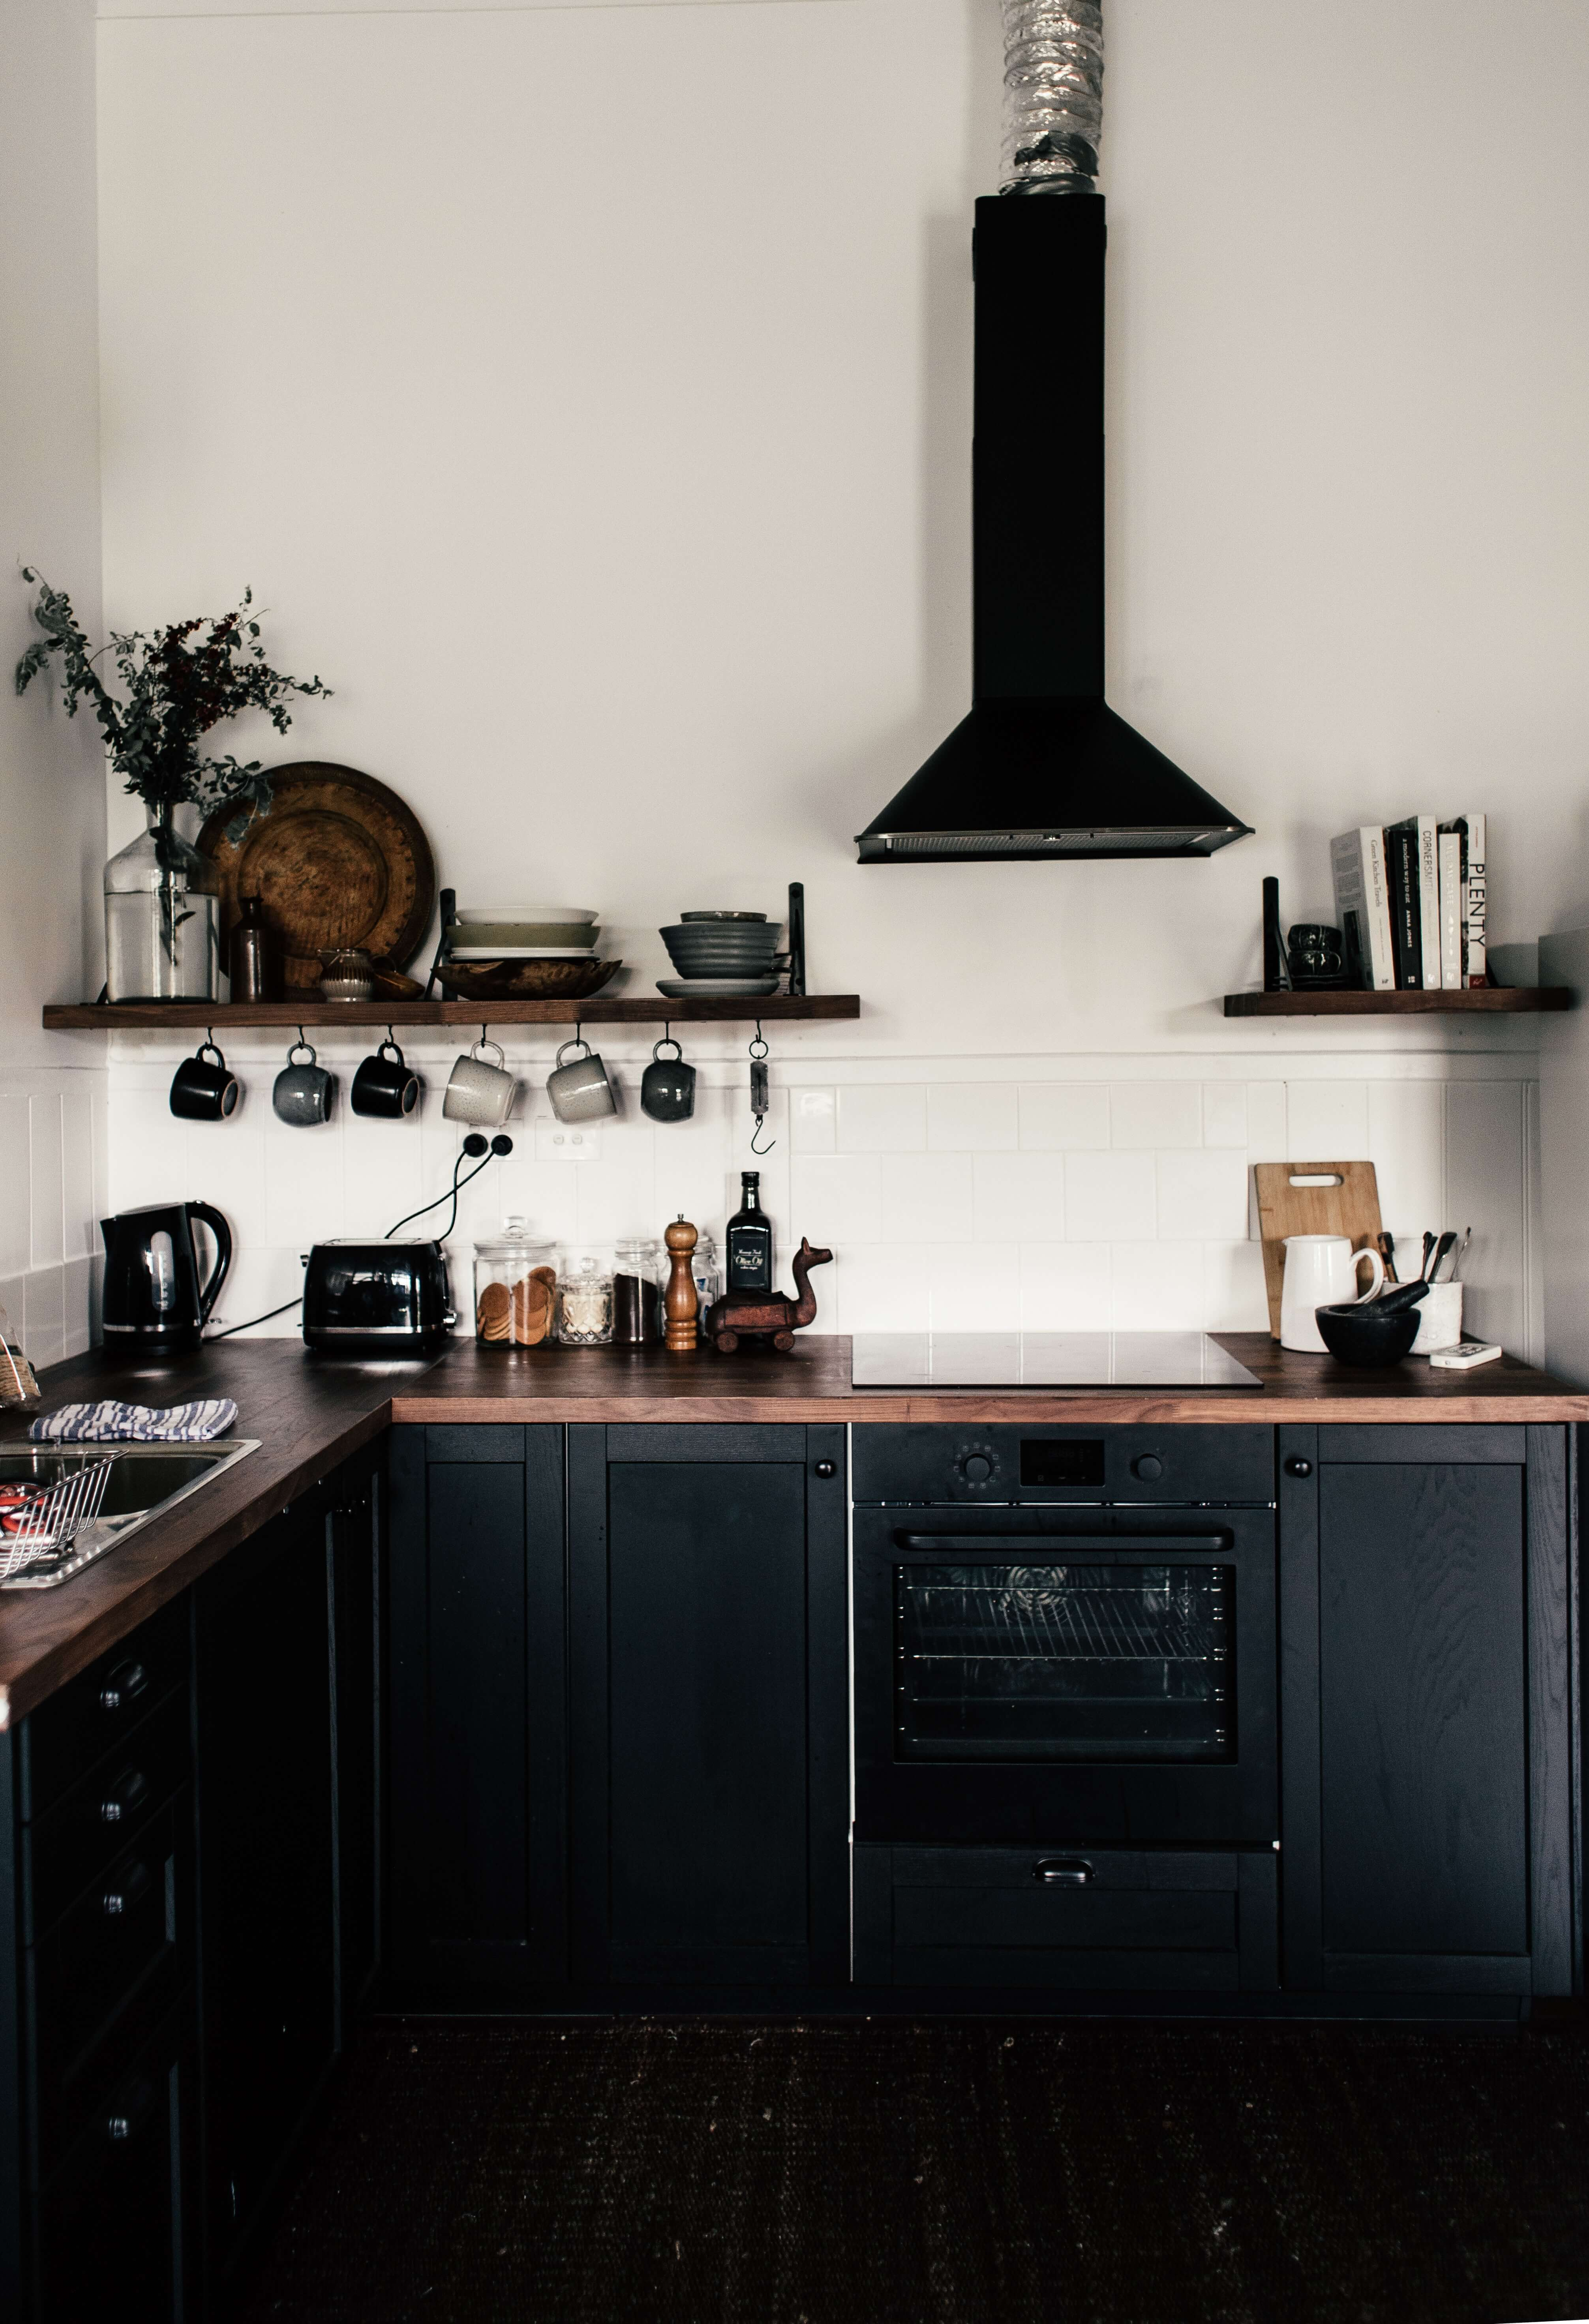 Kitchen with black finish and white tiles